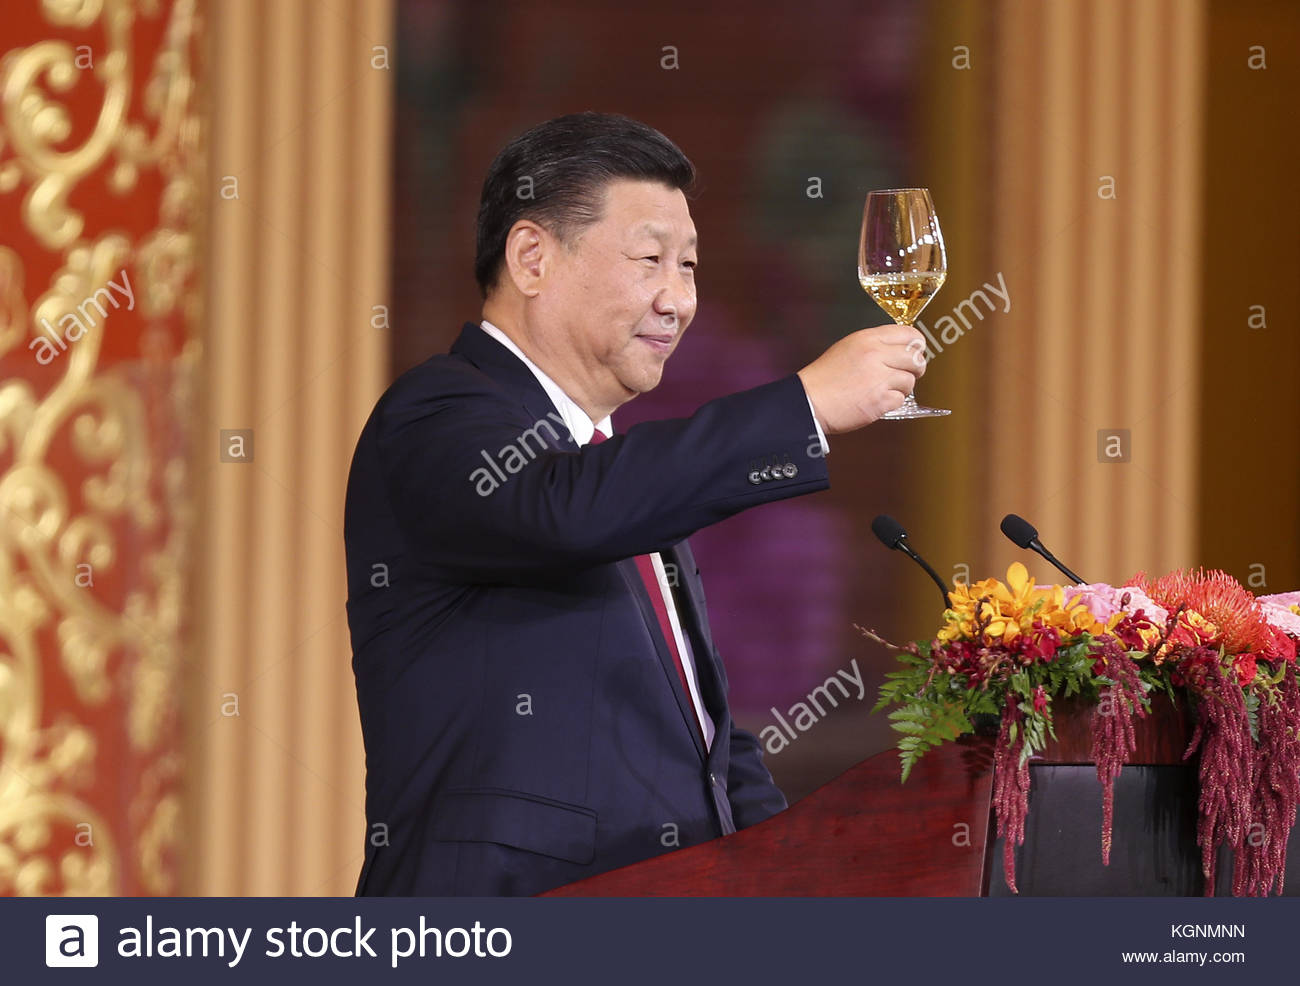 Beijing, China. 09th Nov, 2017. China President Xi Jinping and wife Peng Liyuan welcome US President Donald Trump - Stock Image